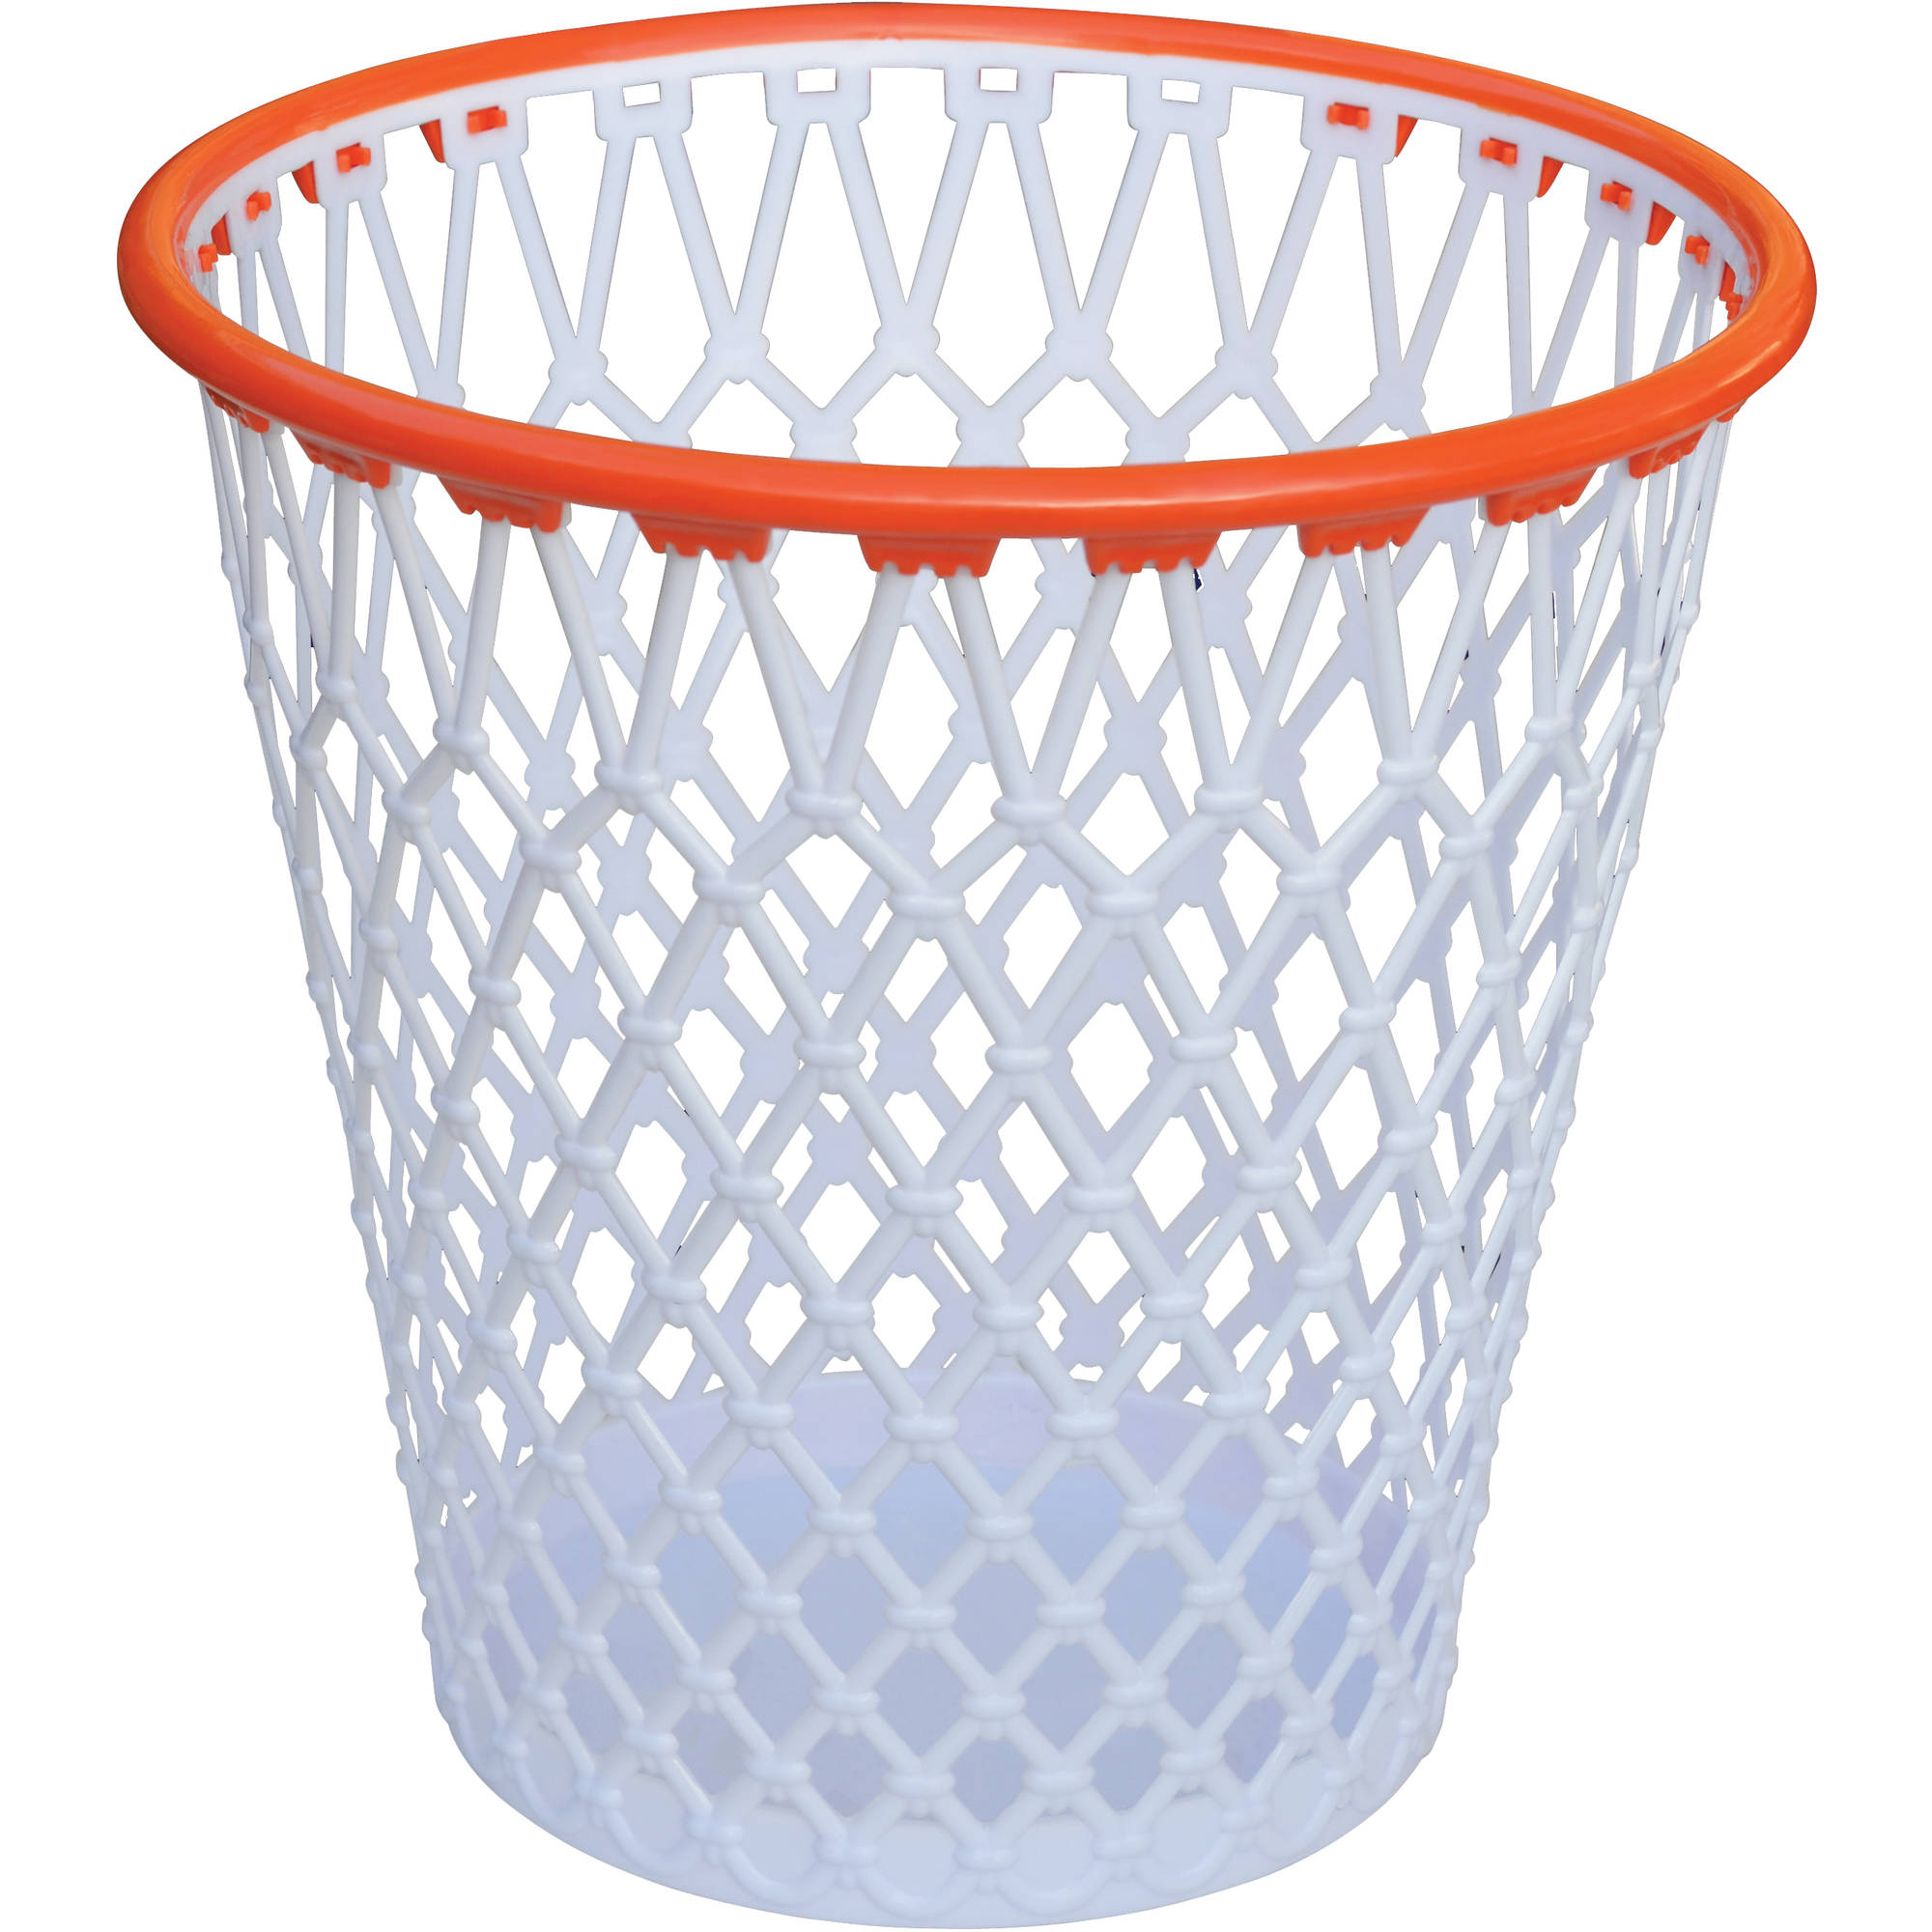 Wastepaper Basket Classy Spalding Hoopster Wastepaper Basket  Walmart Decorating Inspiration